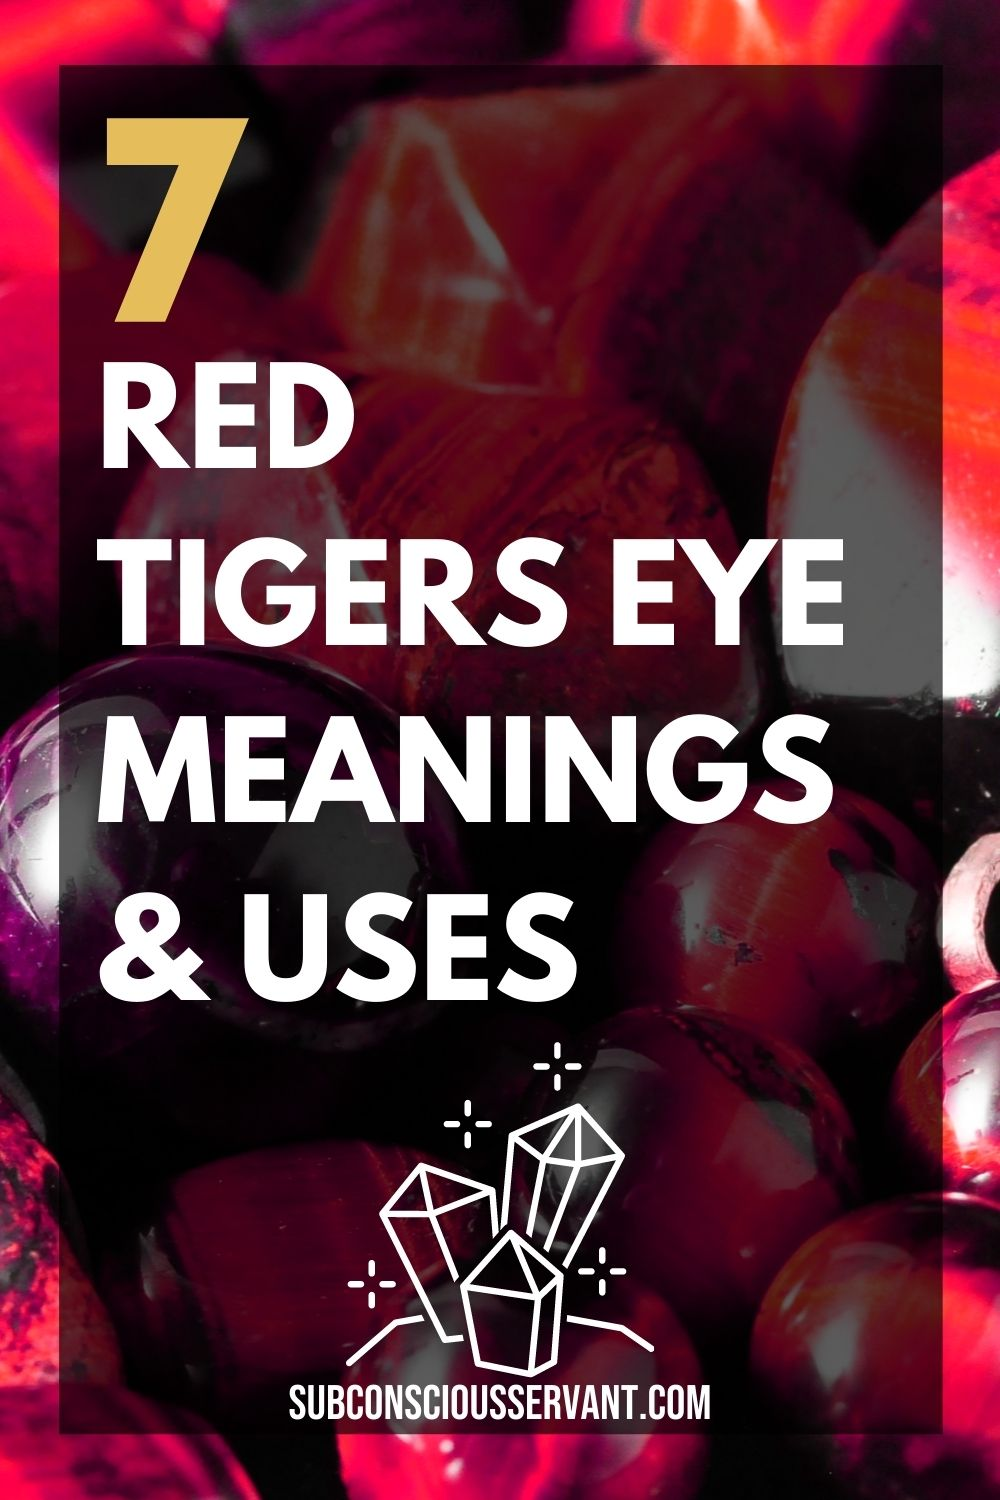 7 Remarkable Red Tigers Eye Metaphysical Meanings & Uses